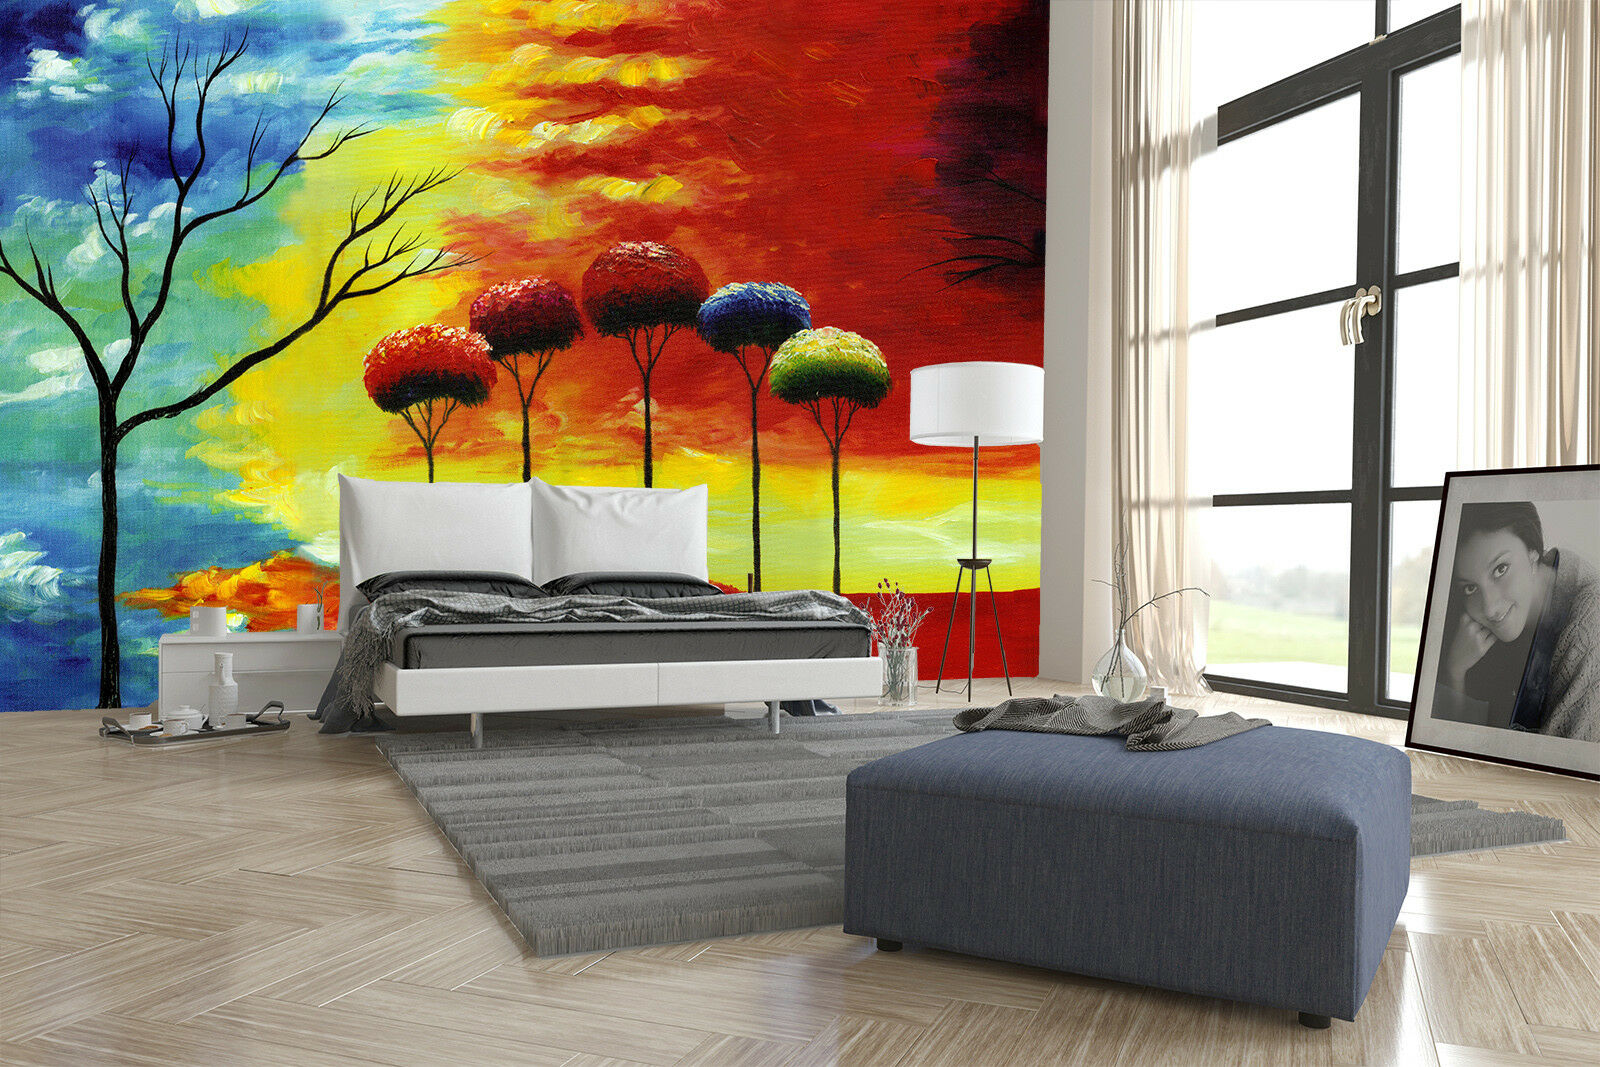 3D Trees Paint 4165 Wallpaper Murals Wall Print Wallpaper Mural AJ WALL UK Lemon